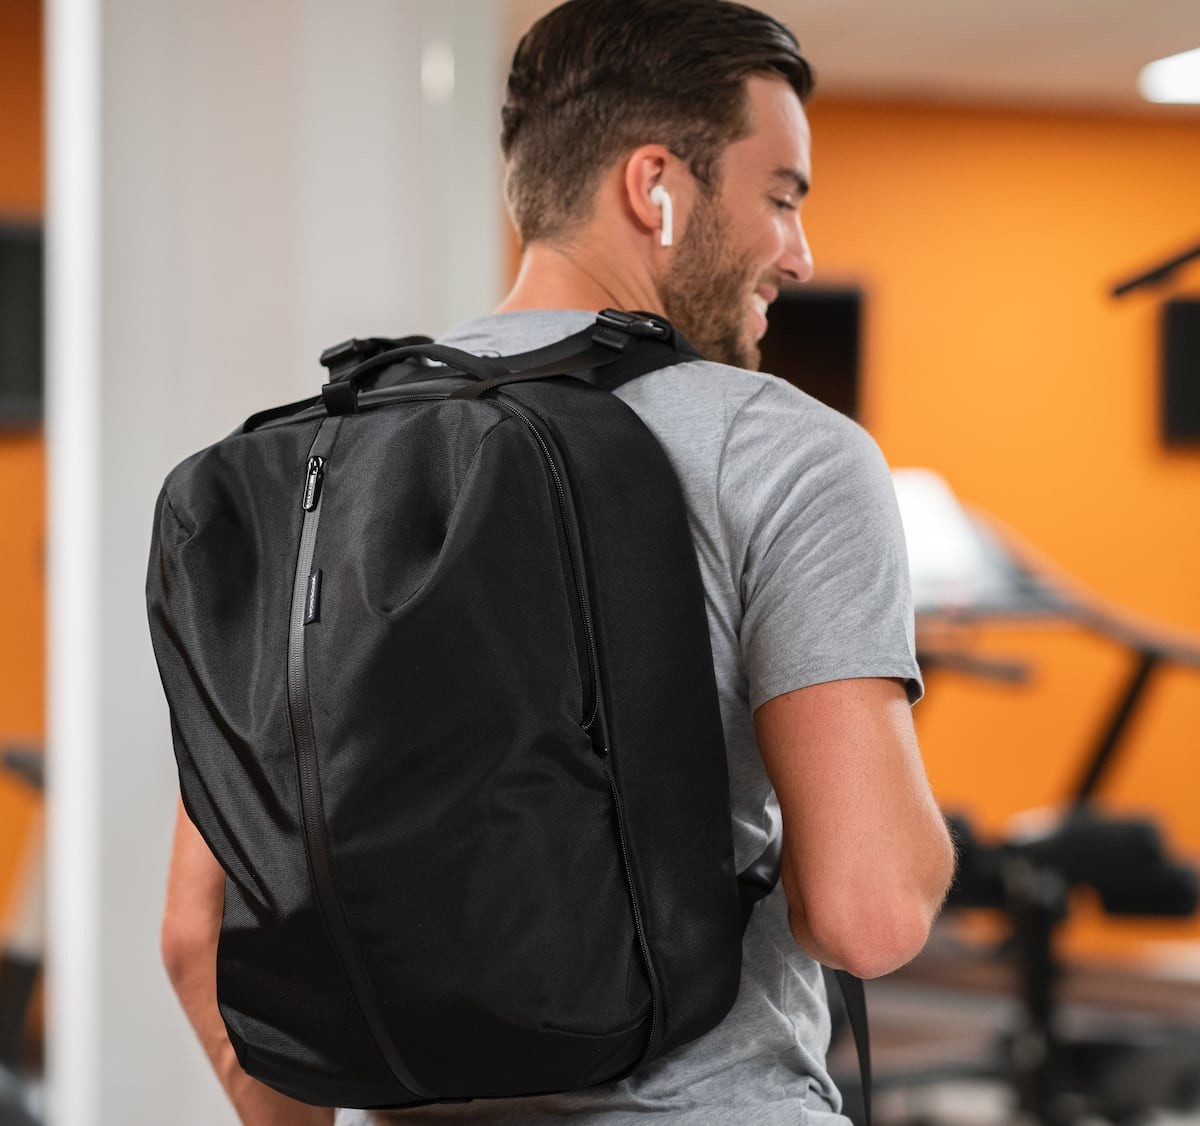 XD Design Flex Line sustainable baggage collection includes the Foldable Trolley & Gym Bag